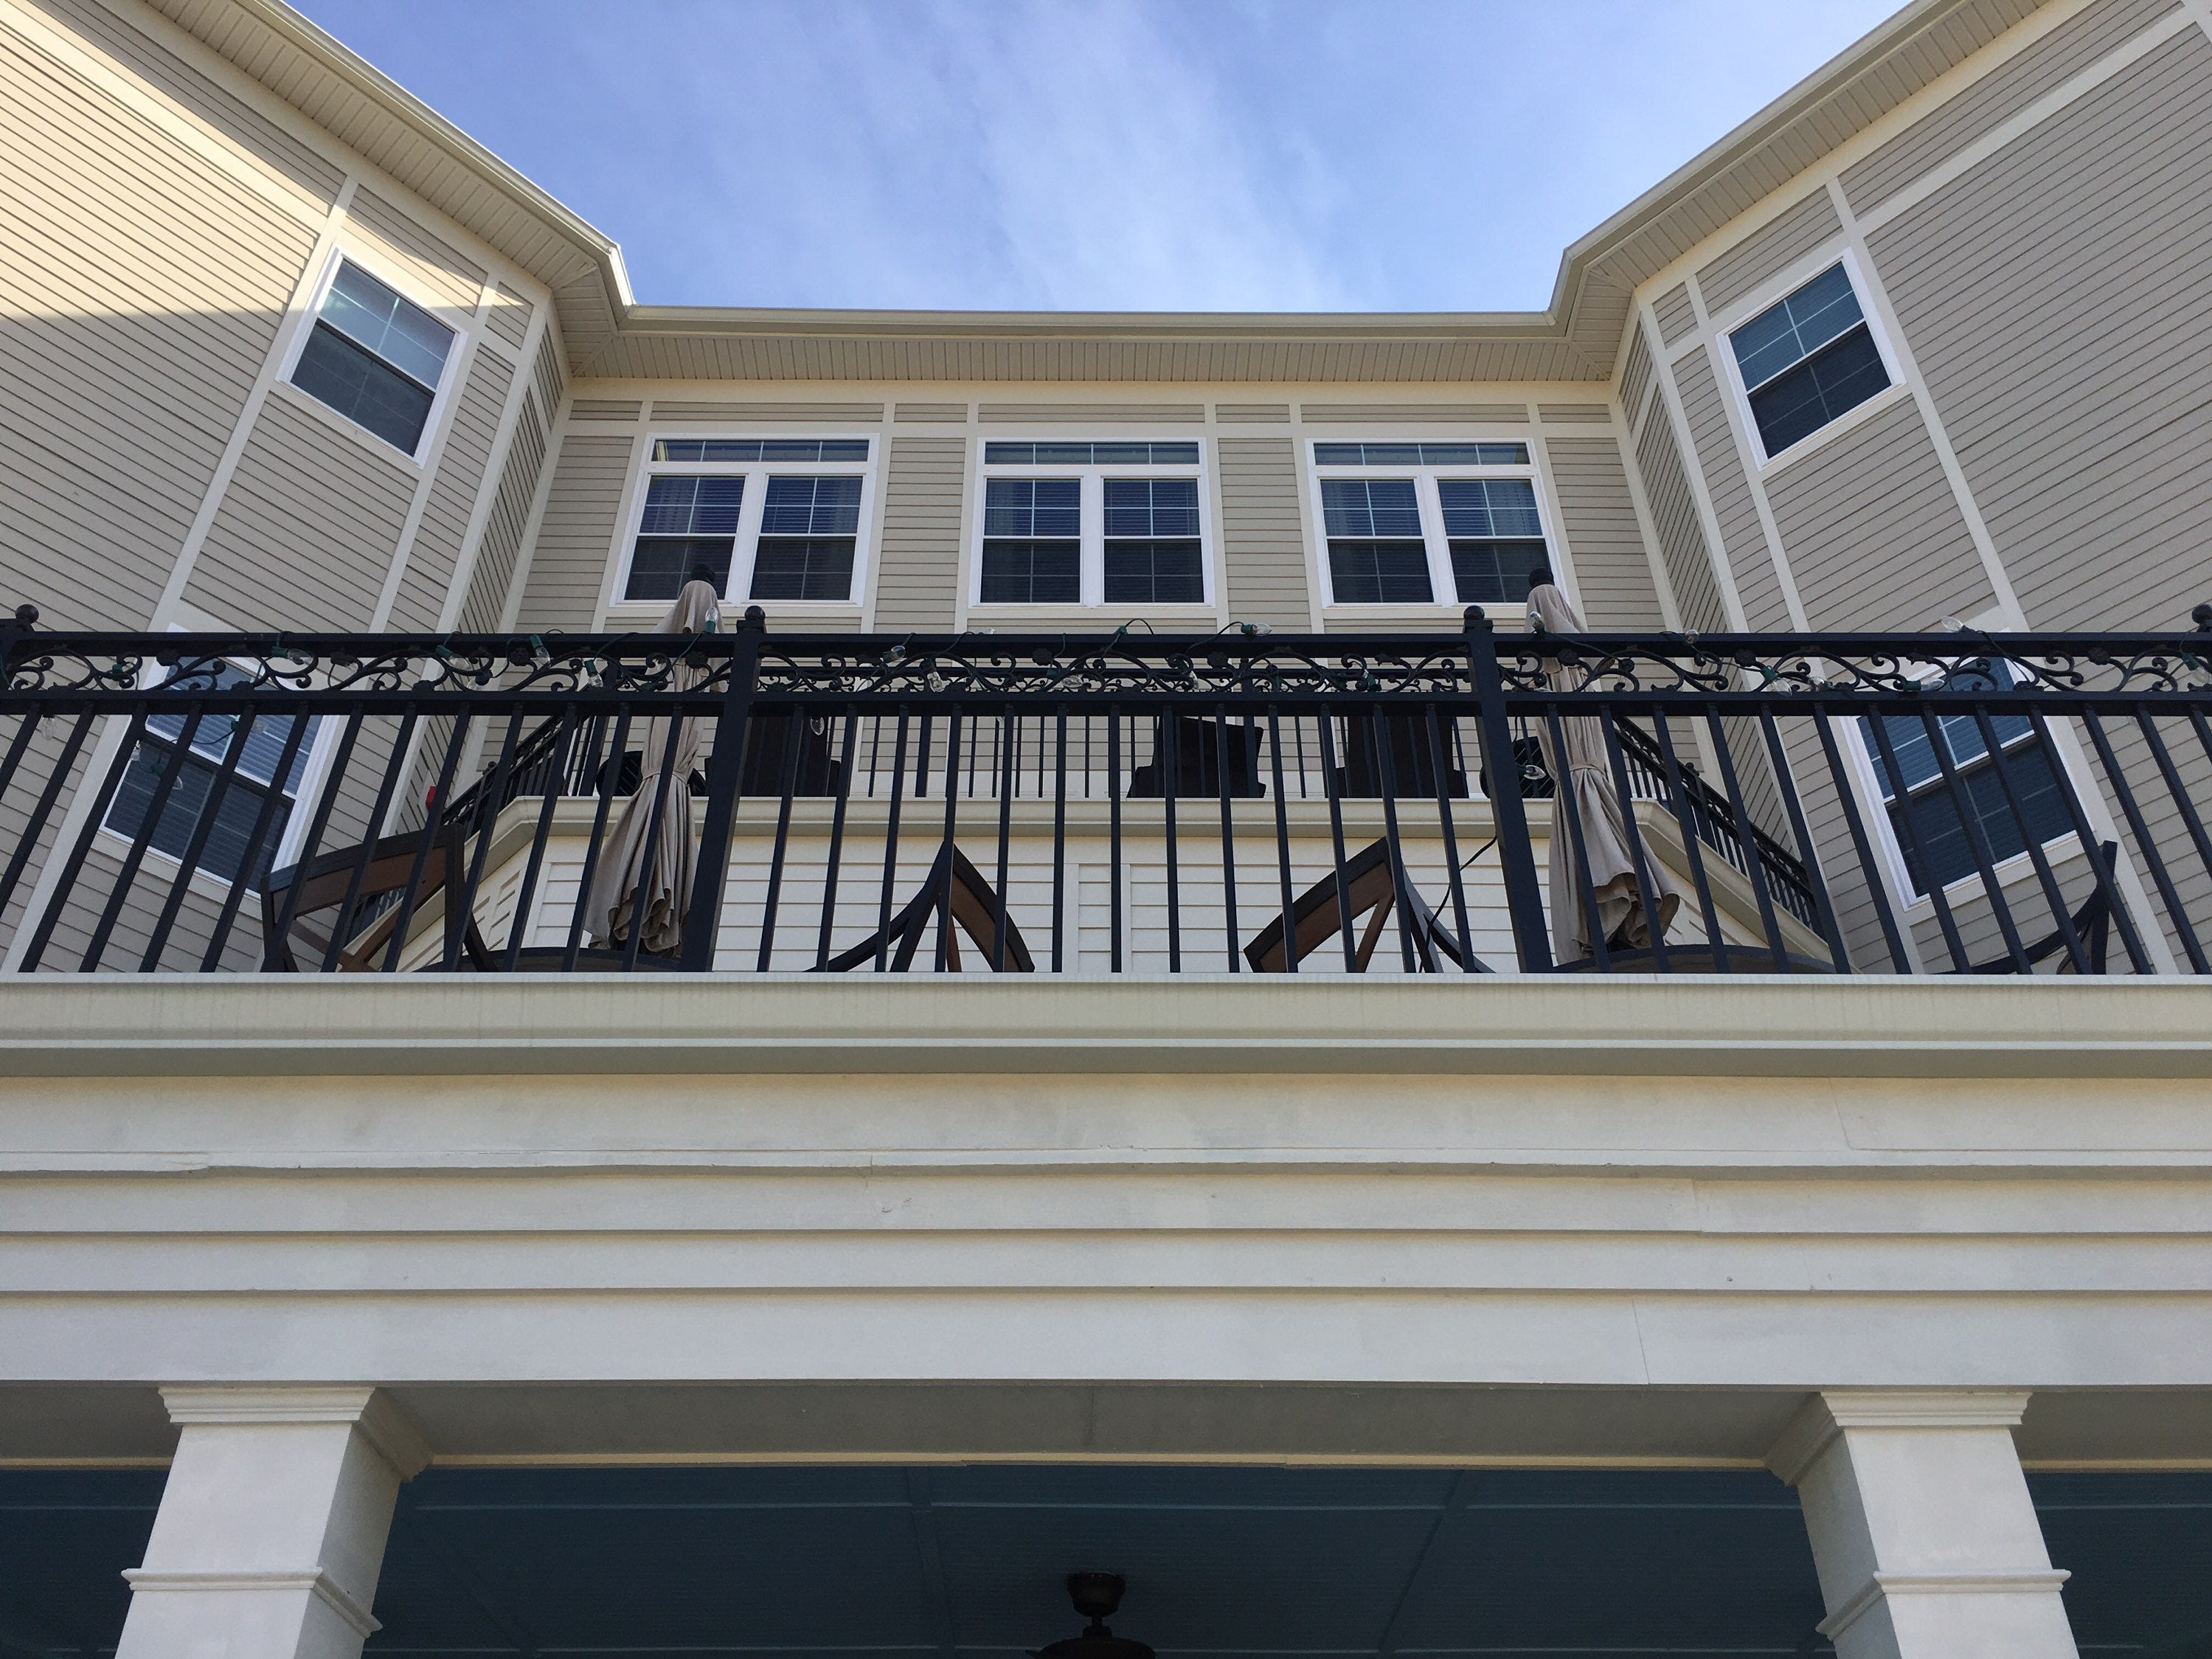 Friday, Jan. 18 is grand opening and ribbon-cutting day at the Villages at the River Club.